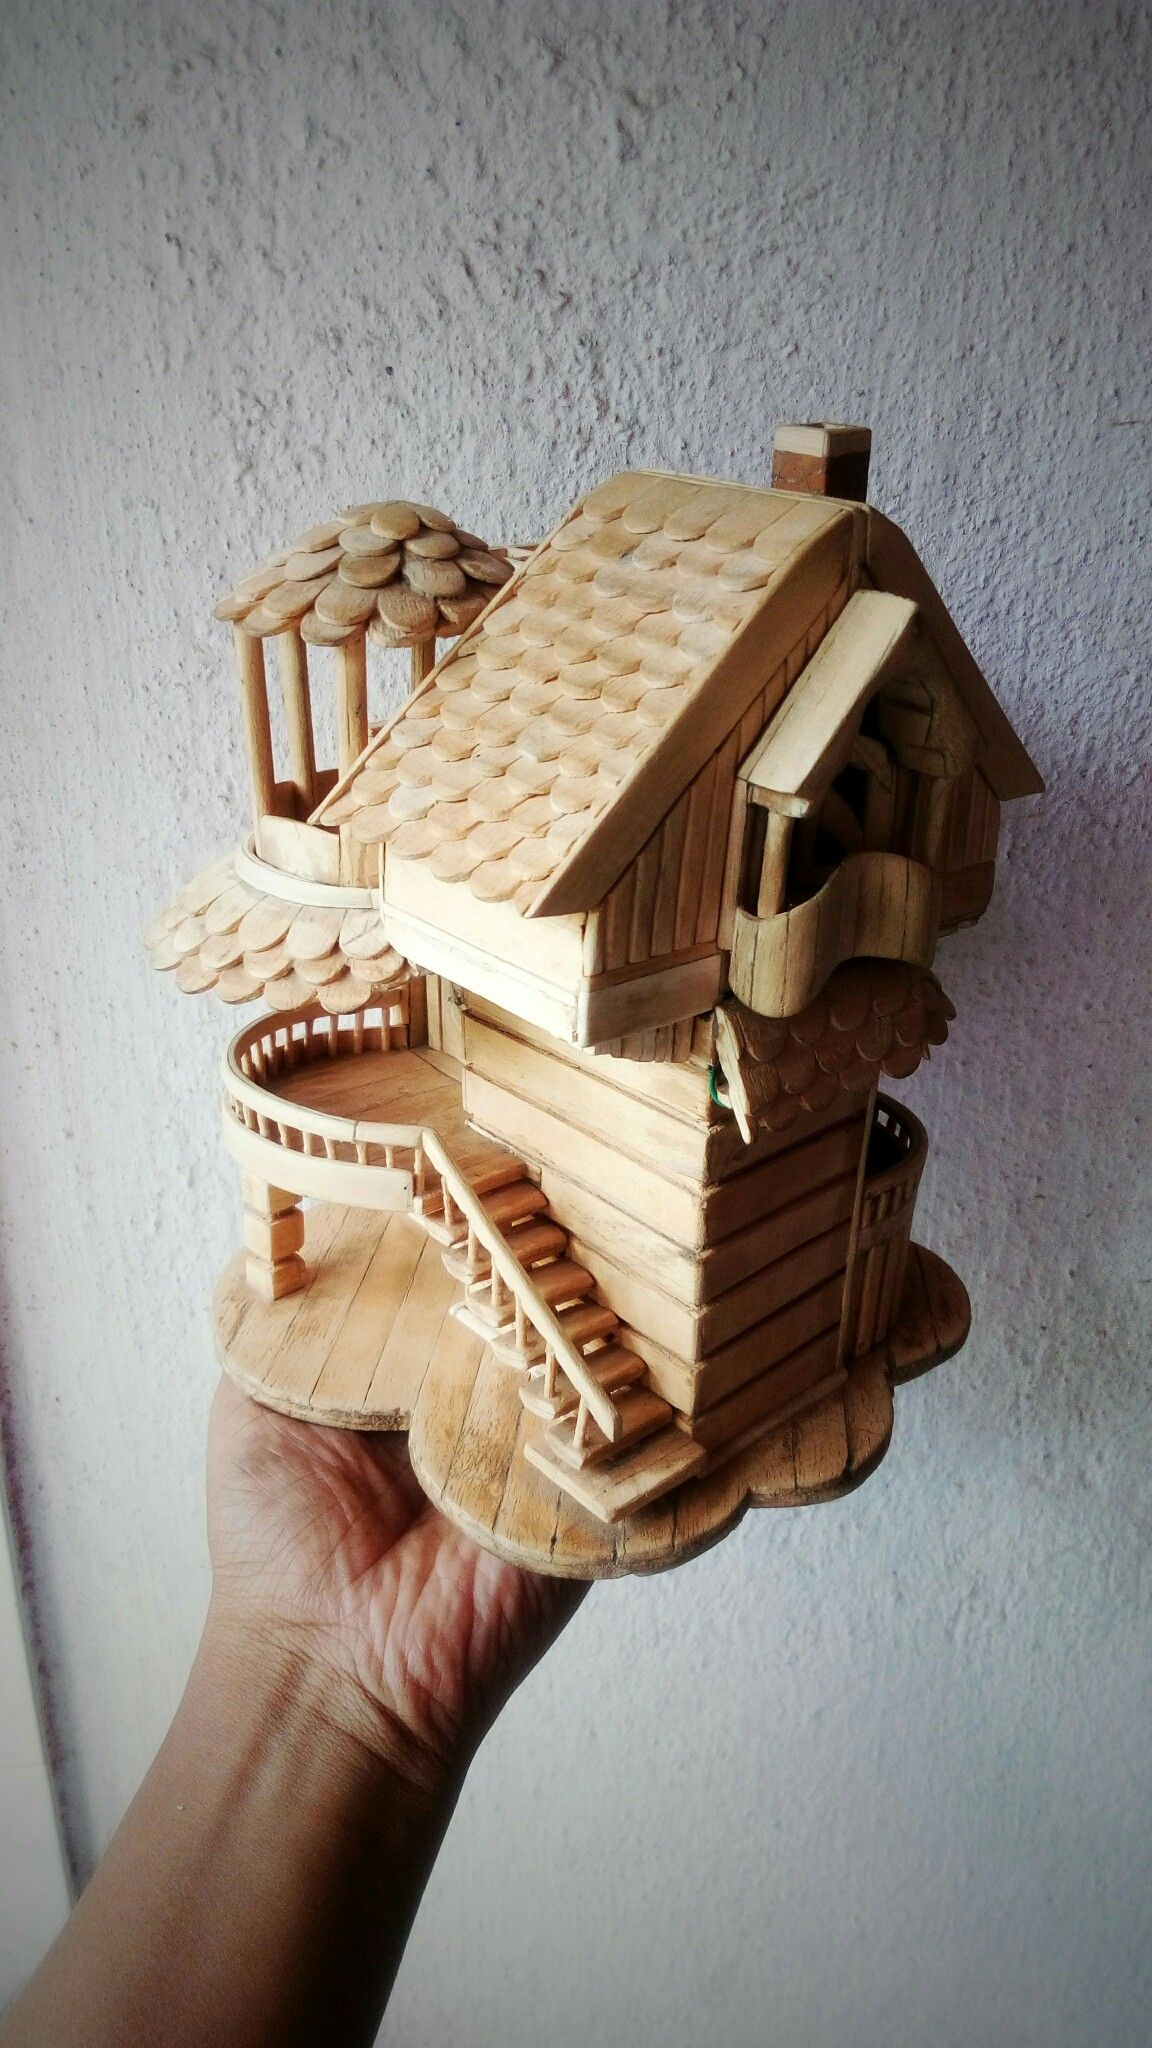 12+ Popsicle stick crafts house ideas